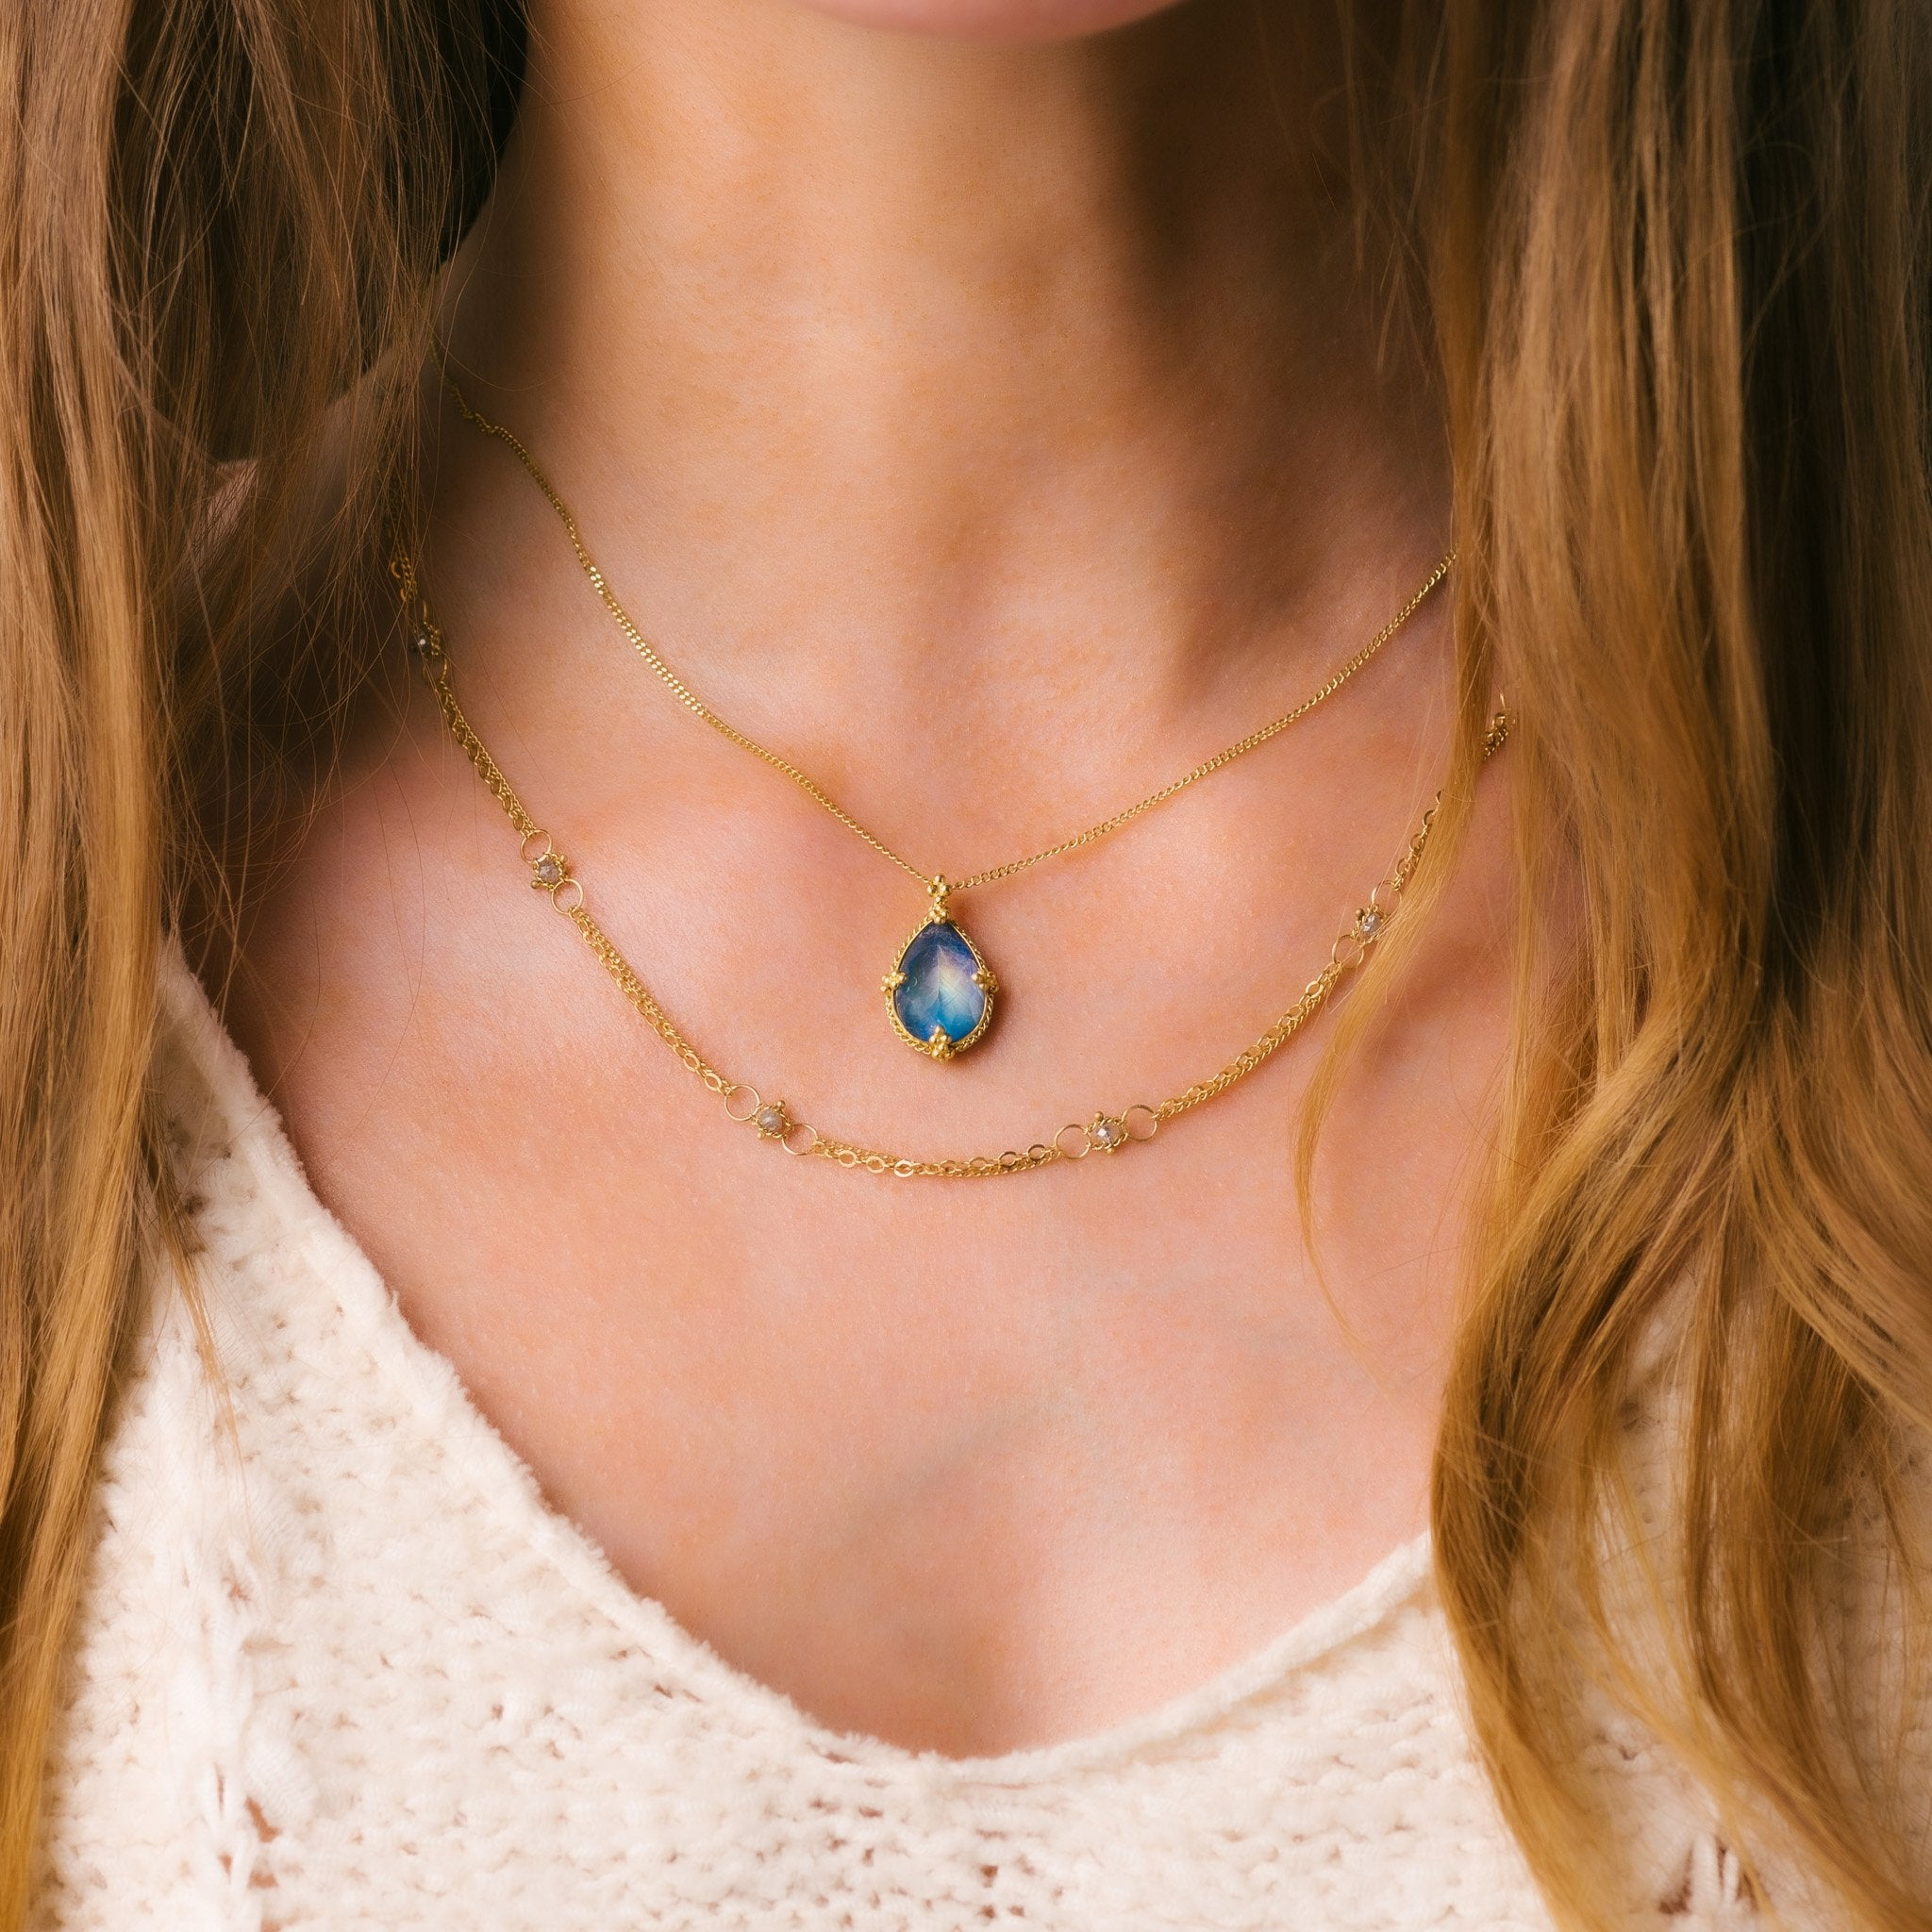 Faceted Moonstone Teardrop Necklace